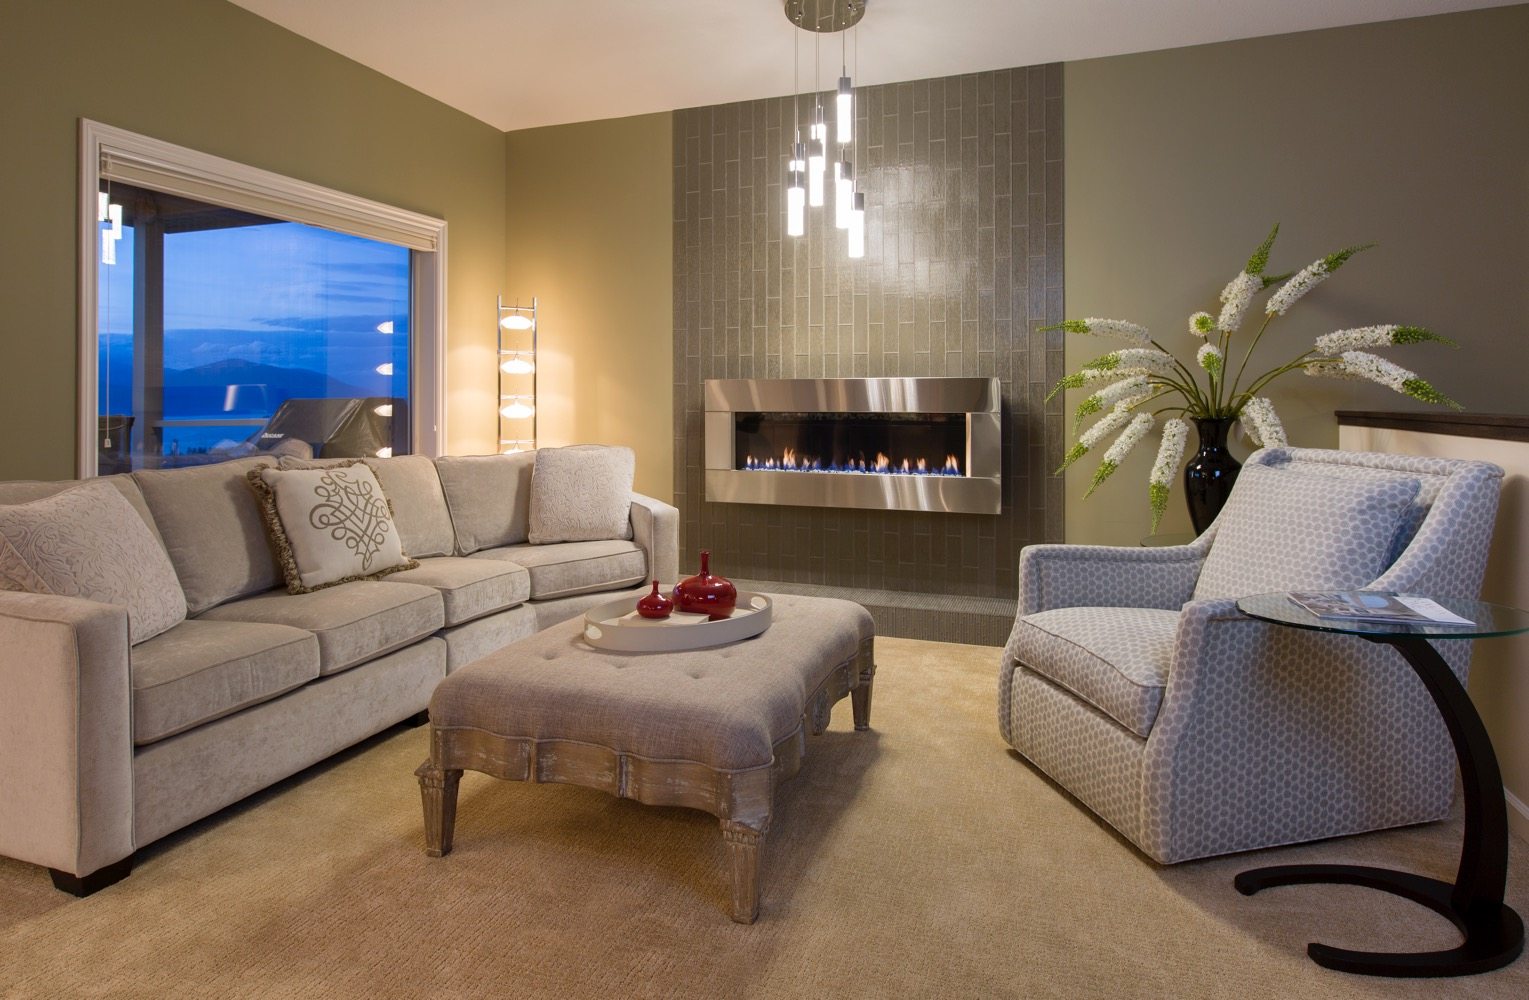 Interior Design Kelowna - Elegant living room with fireplace